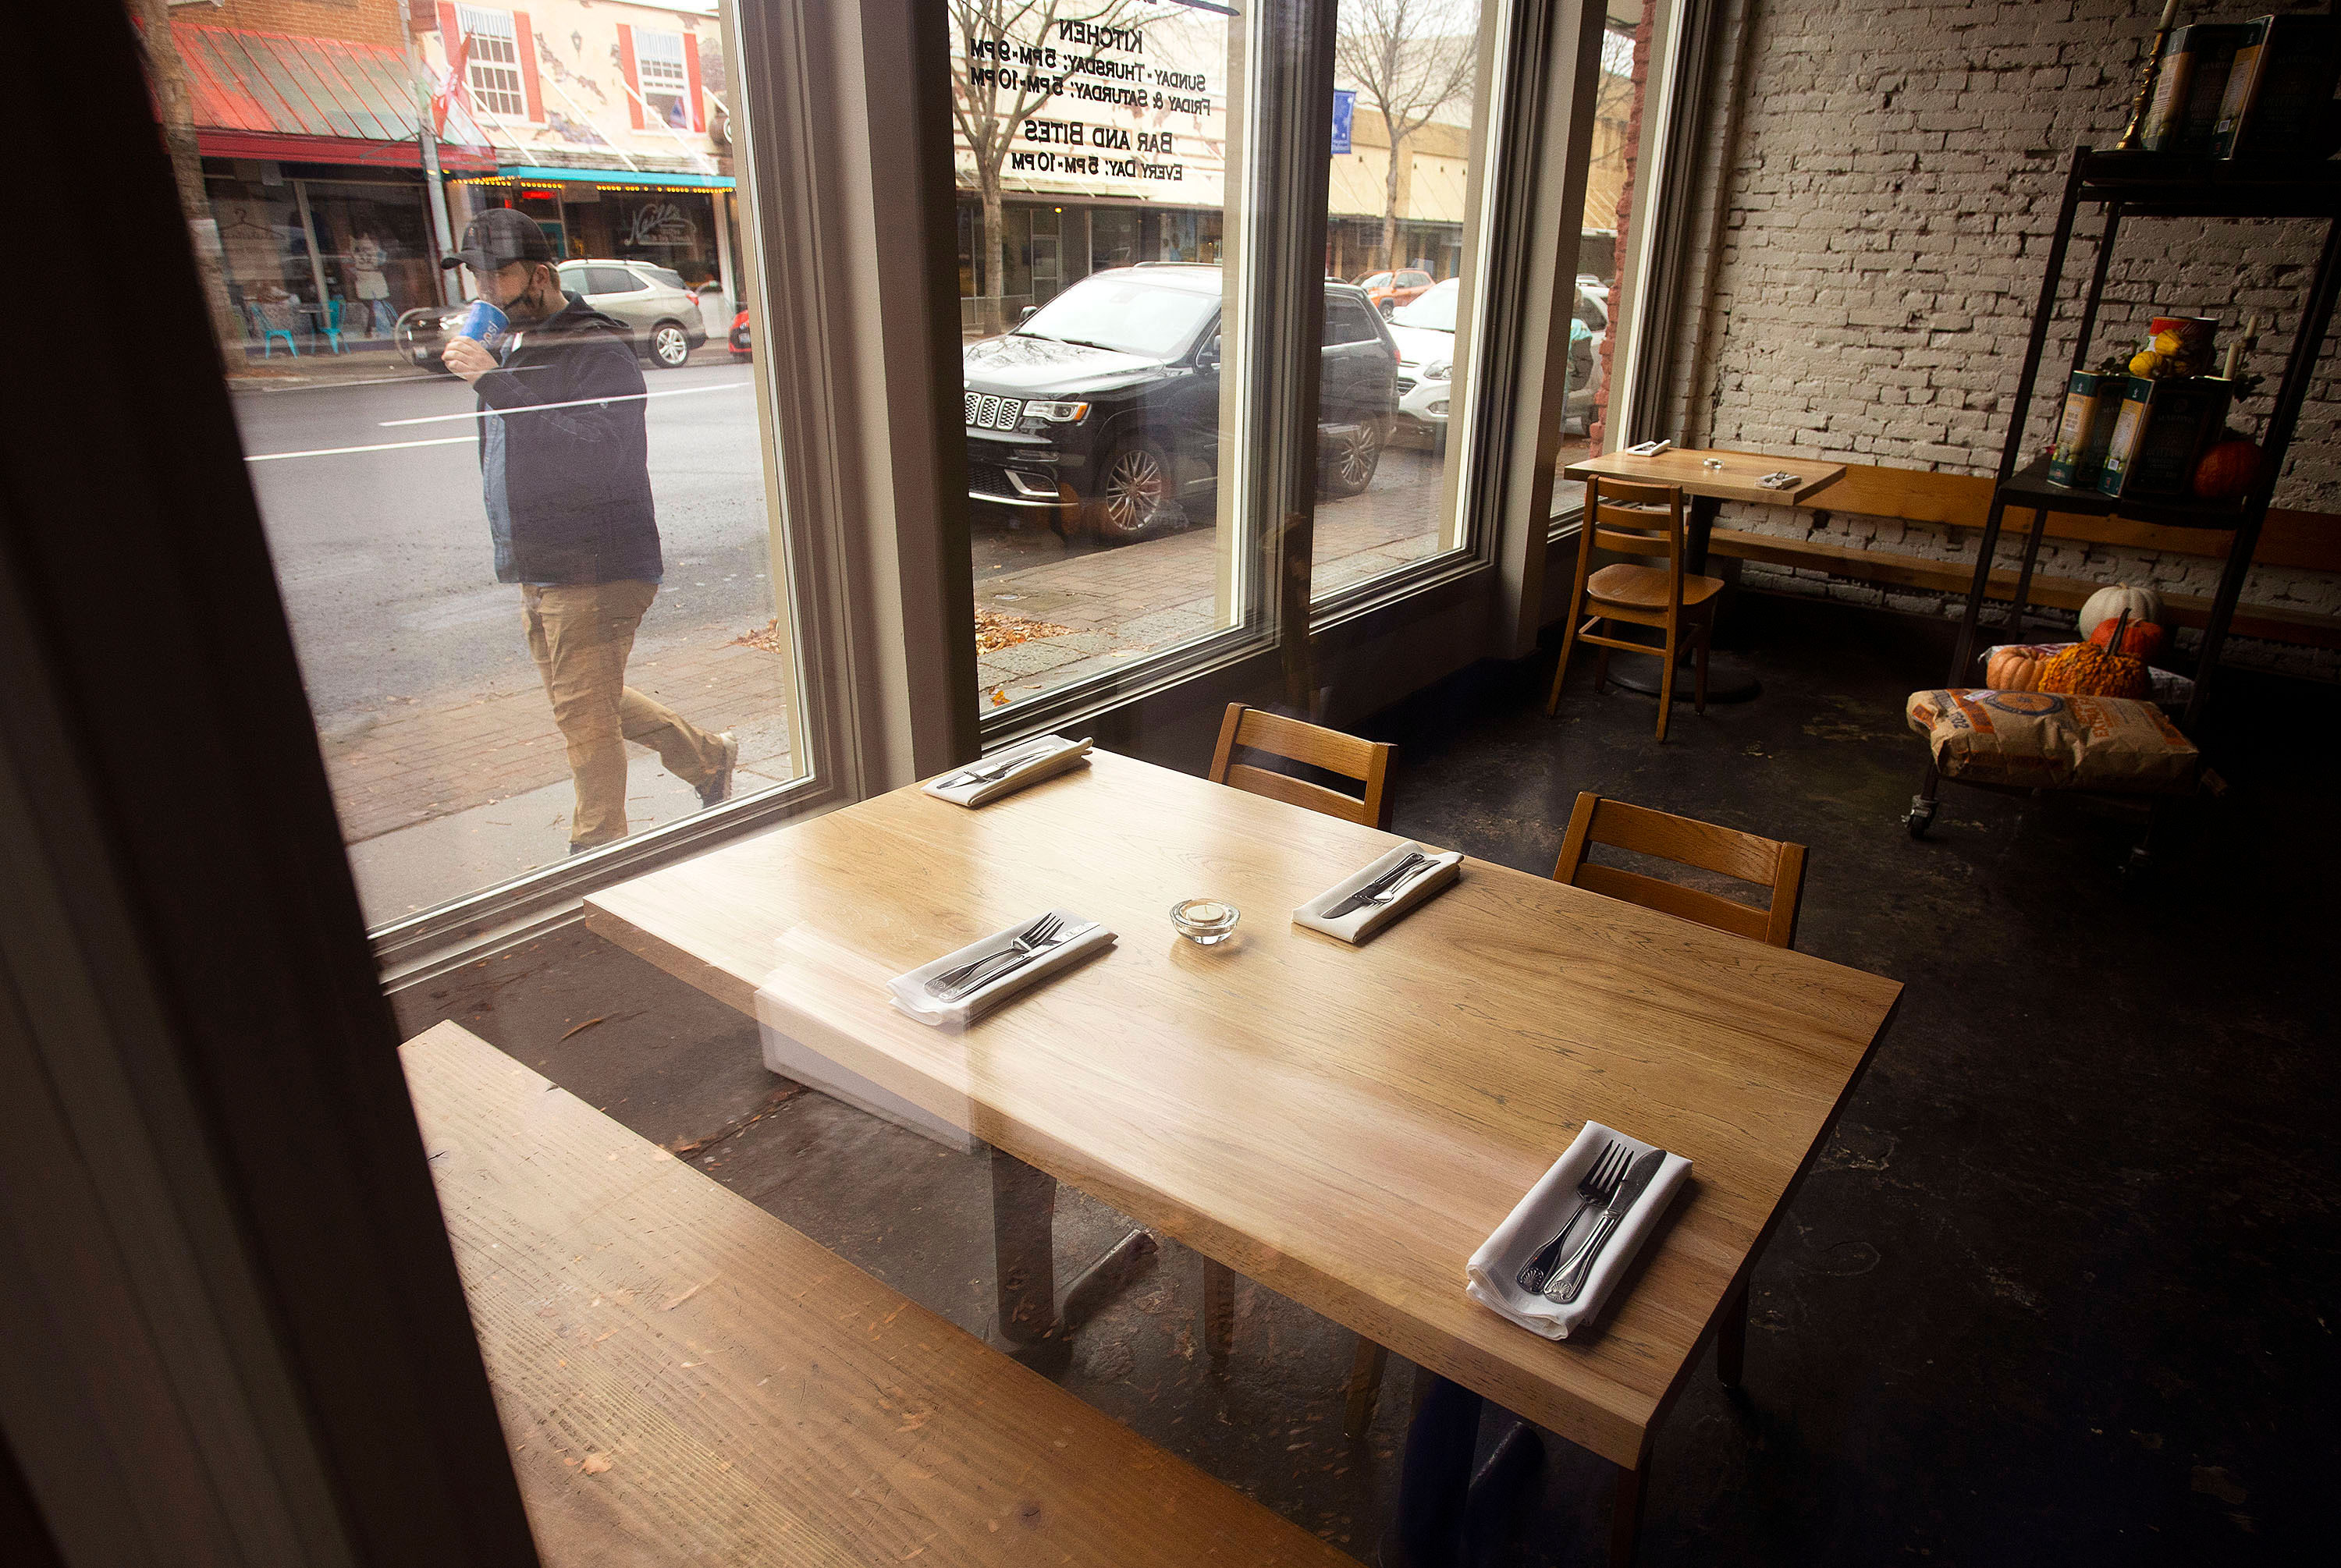 A person walks past empty tables at a restaurant and bar in Pullman, Washington, on November 16.